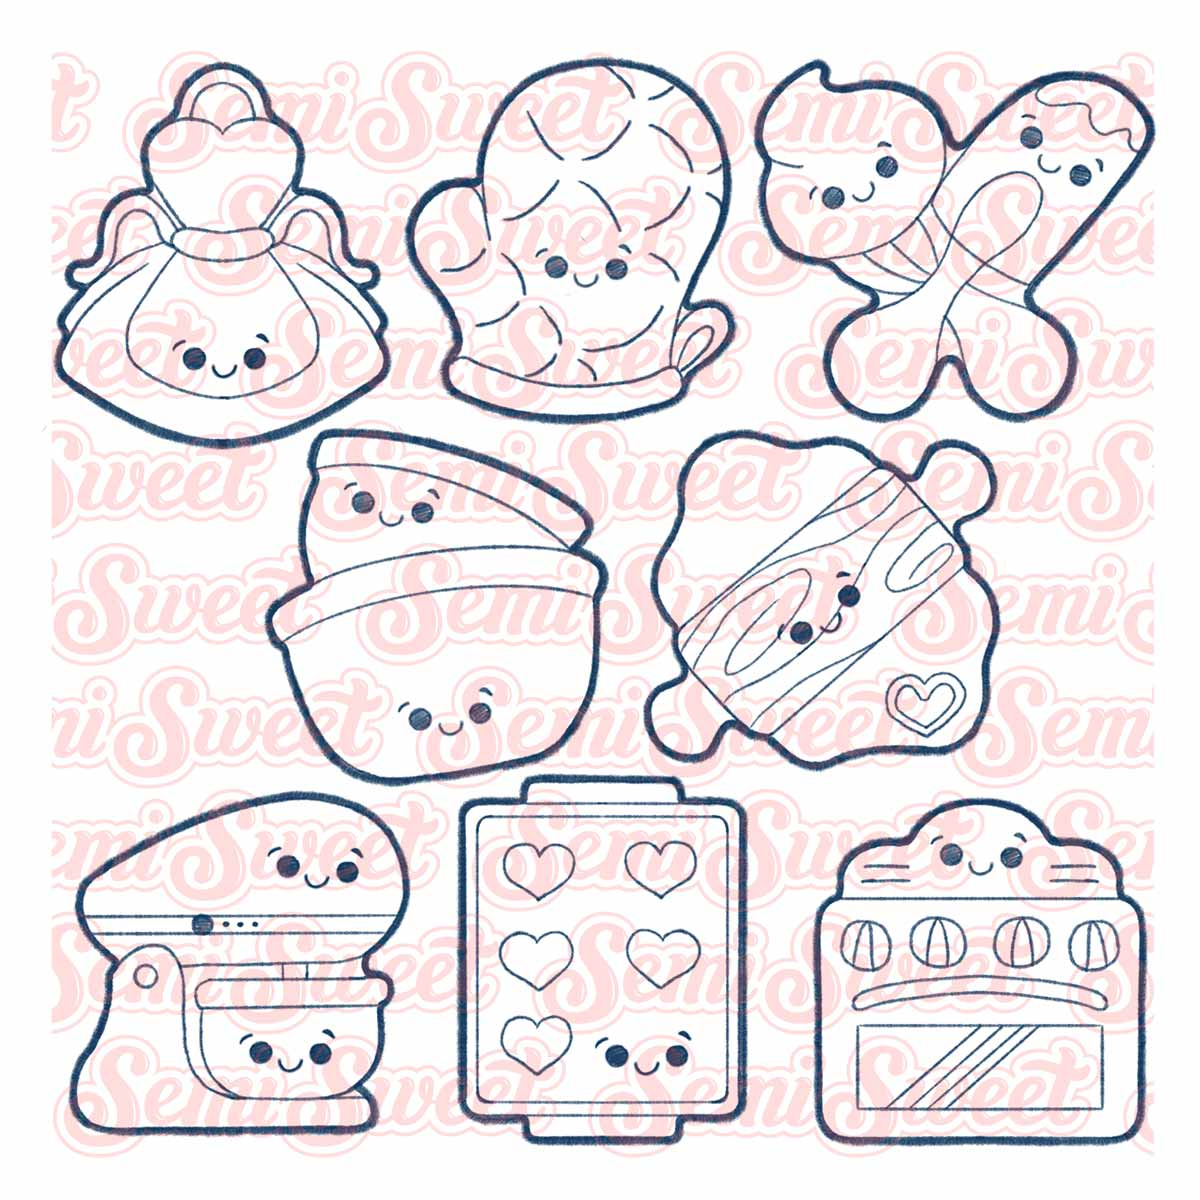 baking-themed cookie cutters apron